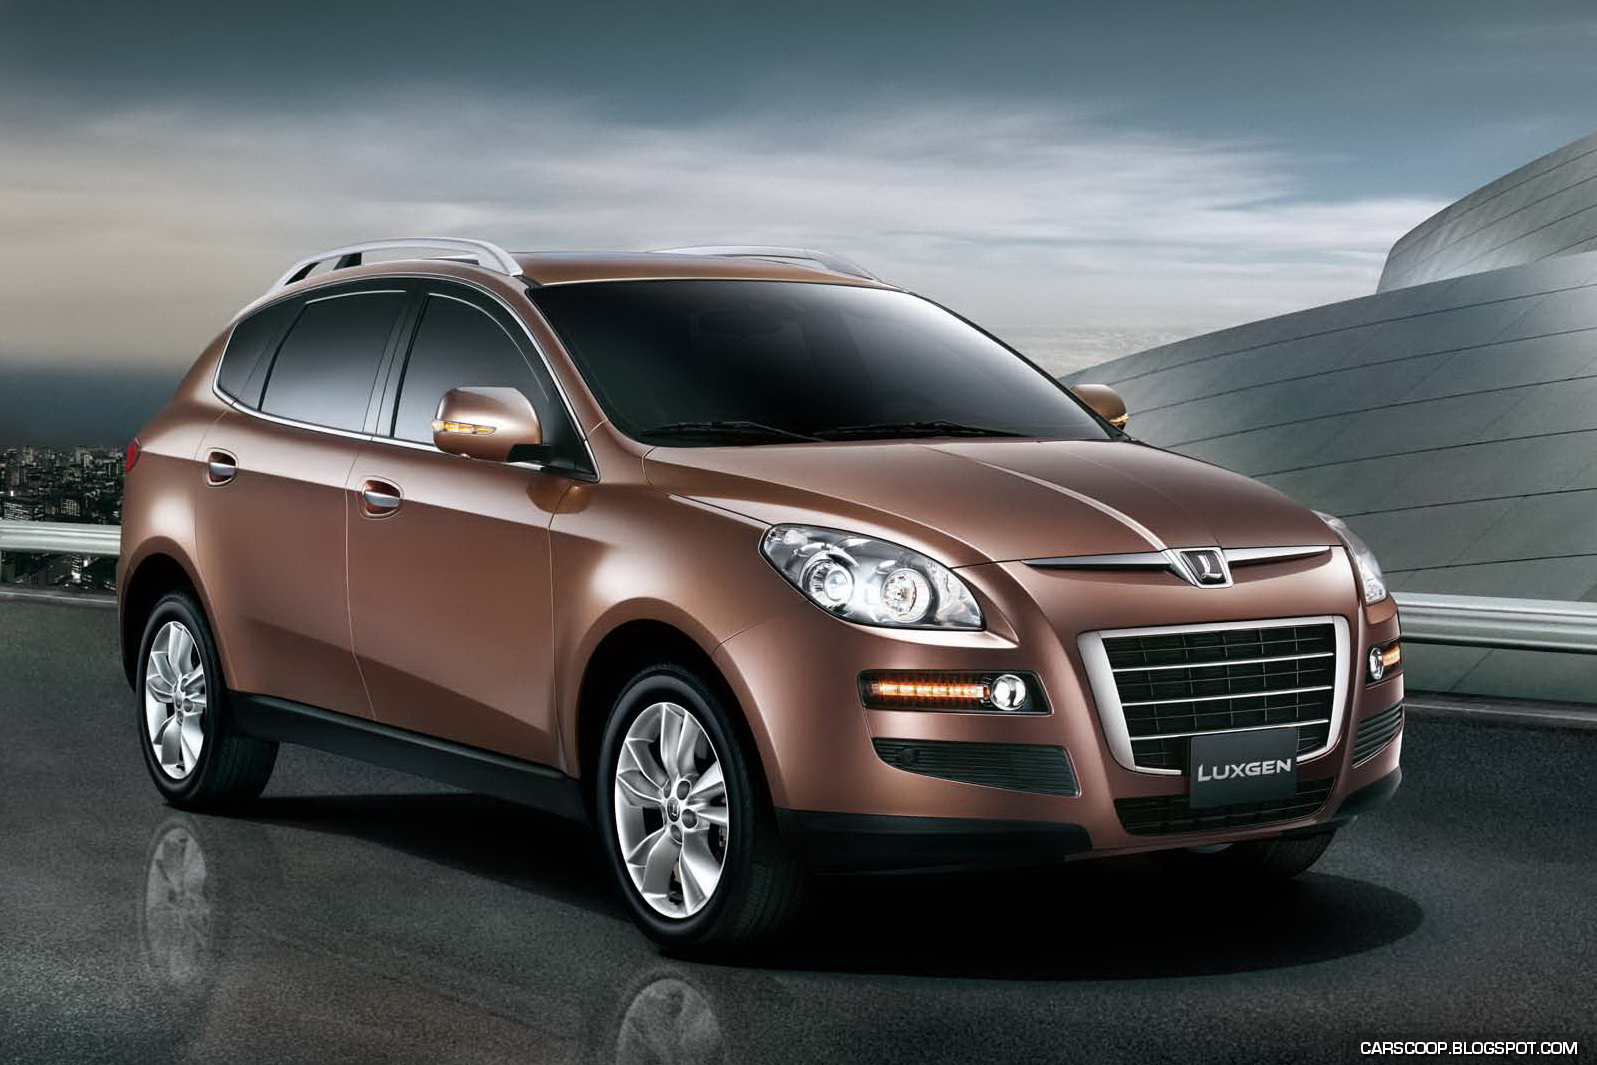 Taiwan's First Car Brand Launches Luxgen7 SUV, Could go on ...